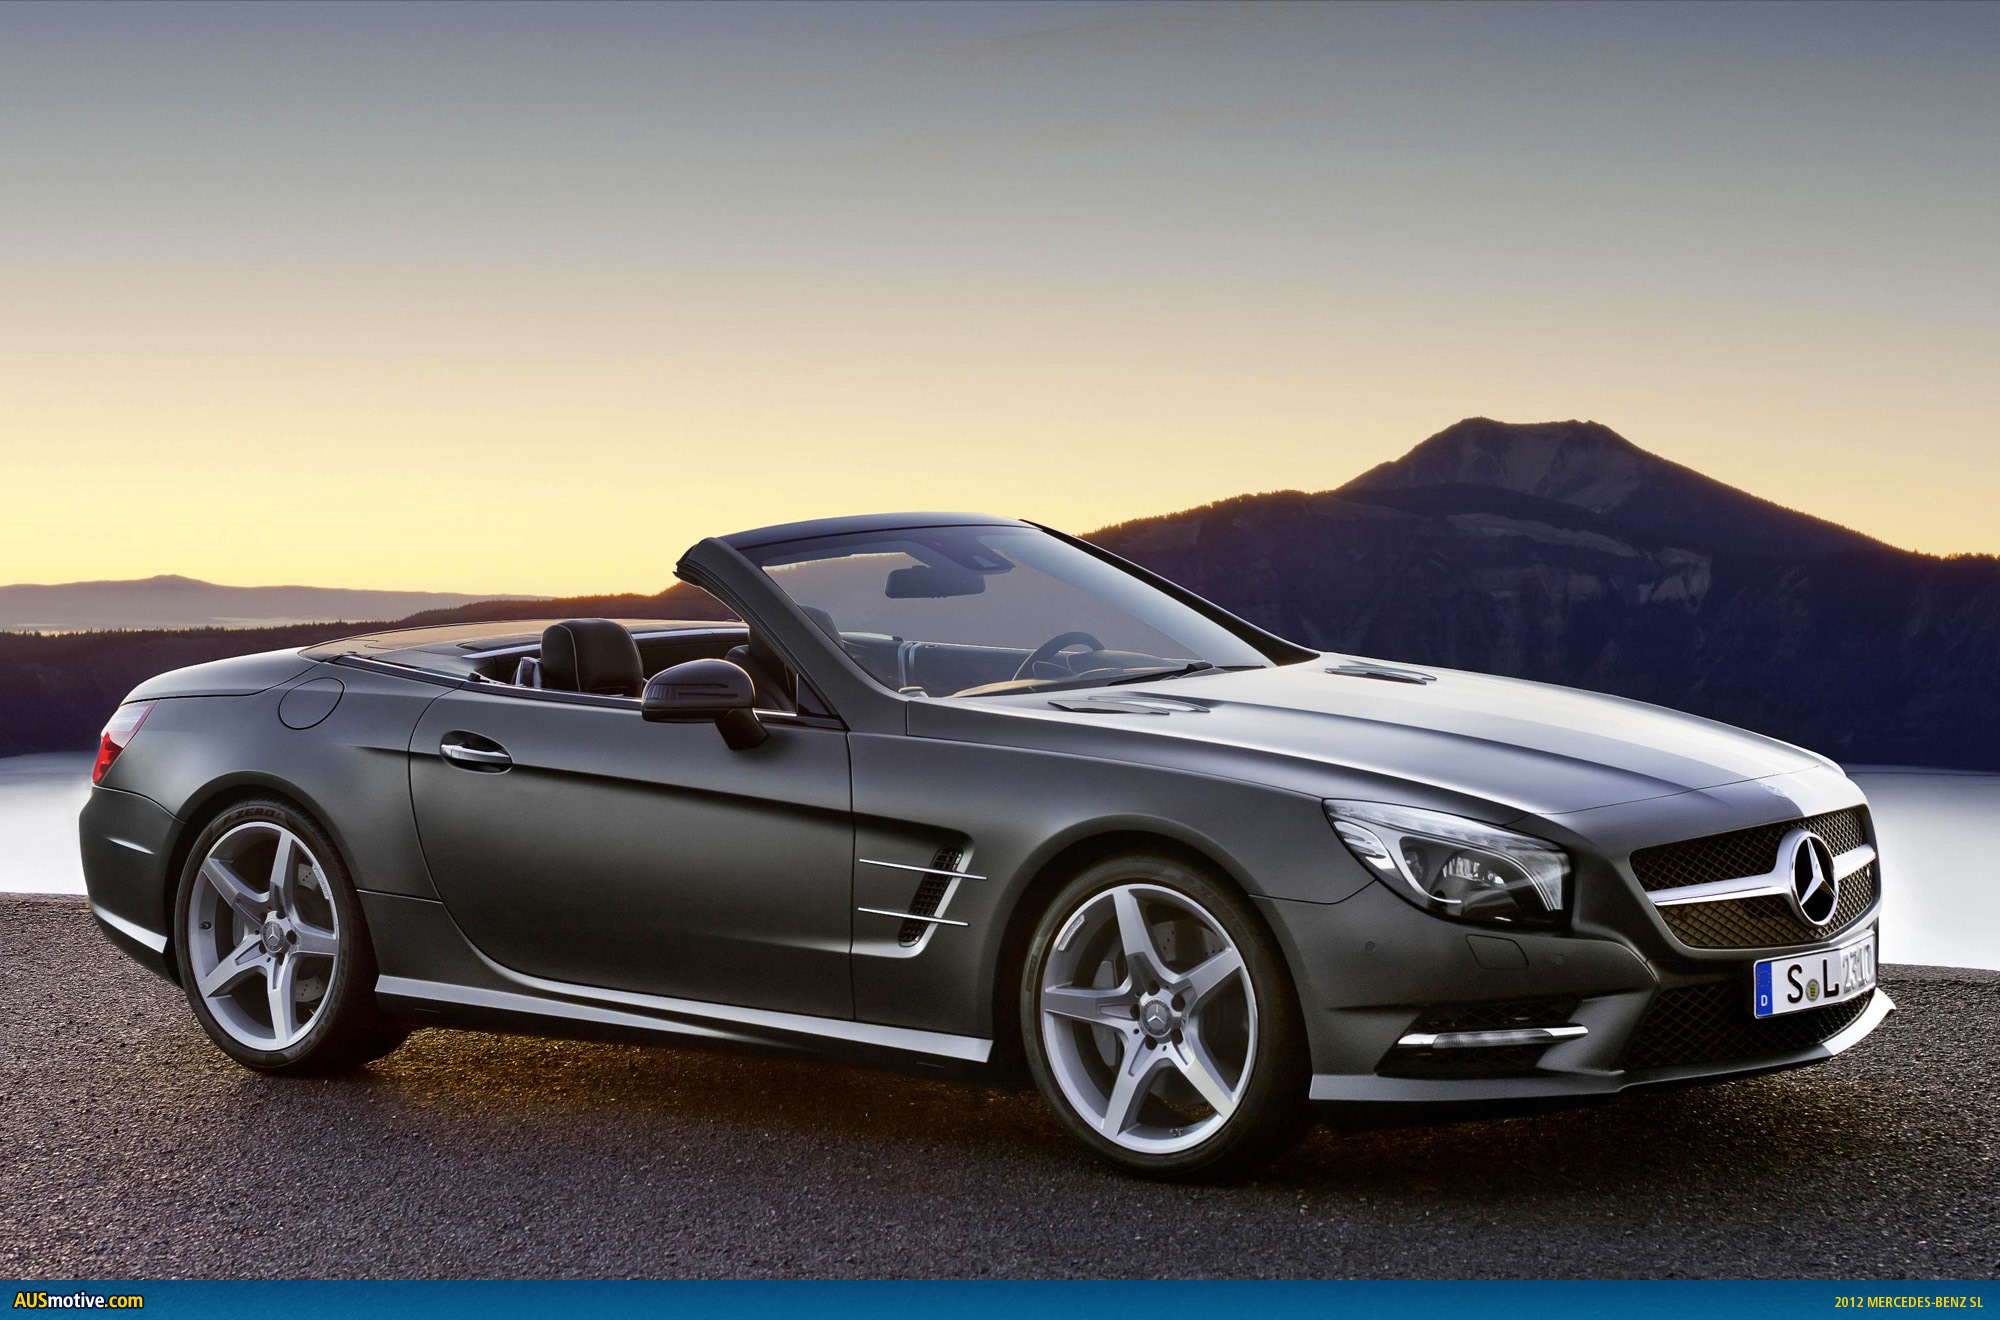 2012 Mercedes-Benz SL #2